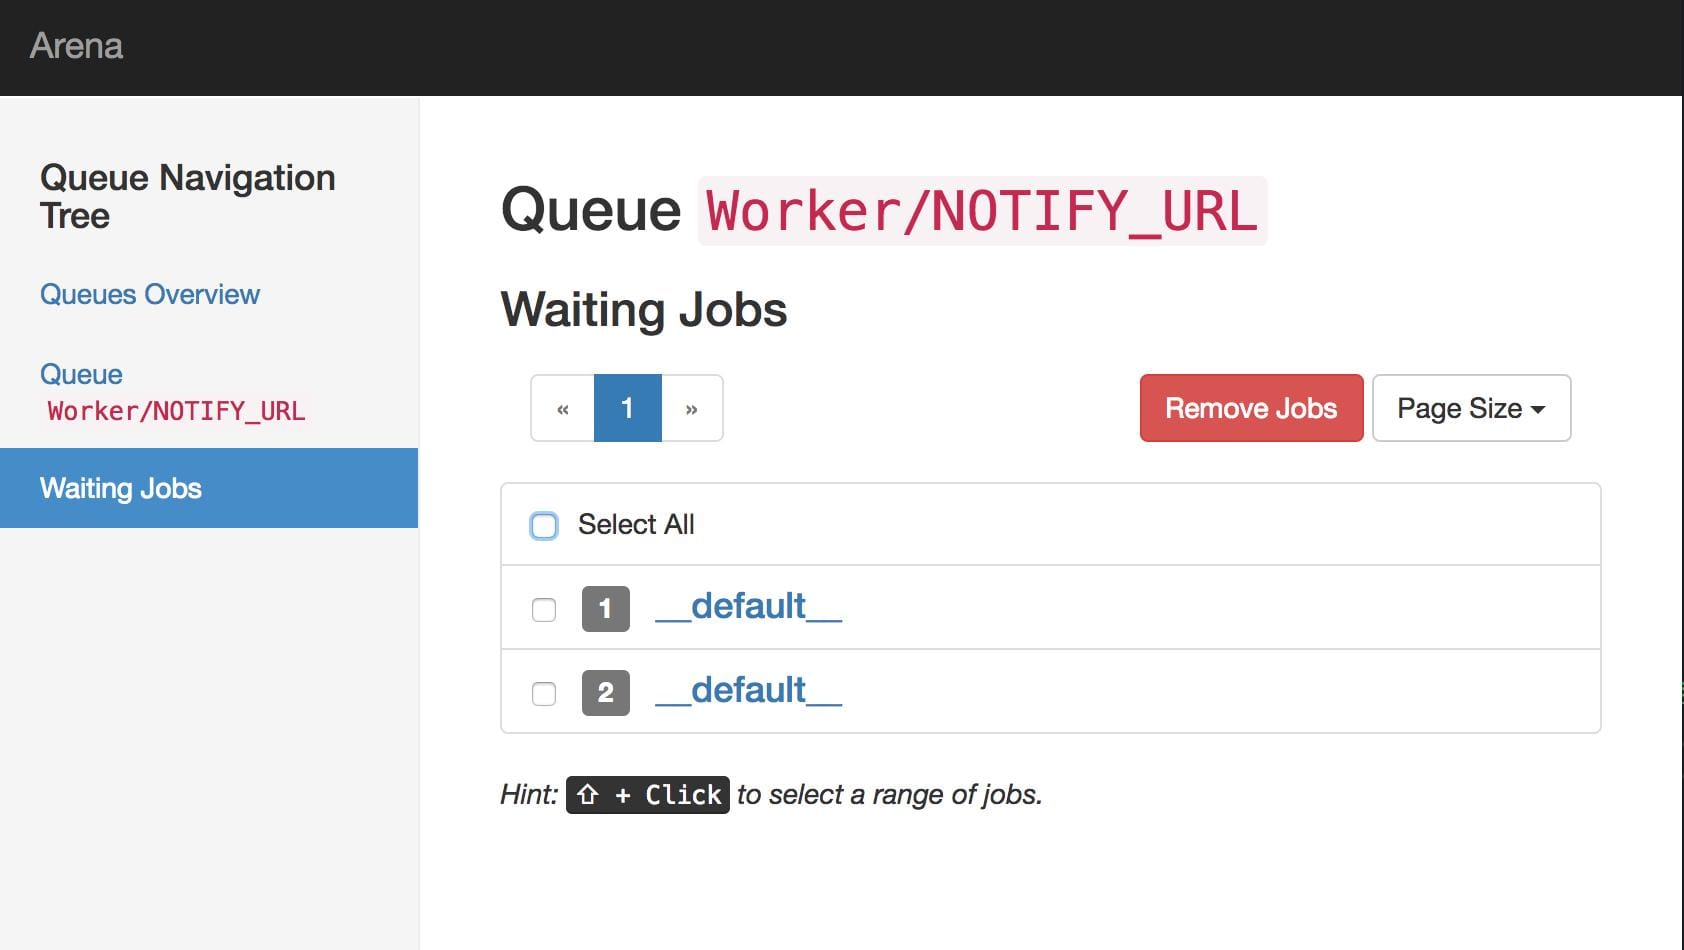 Screenshot of waiting jobs on the NOTIFY_URL queue